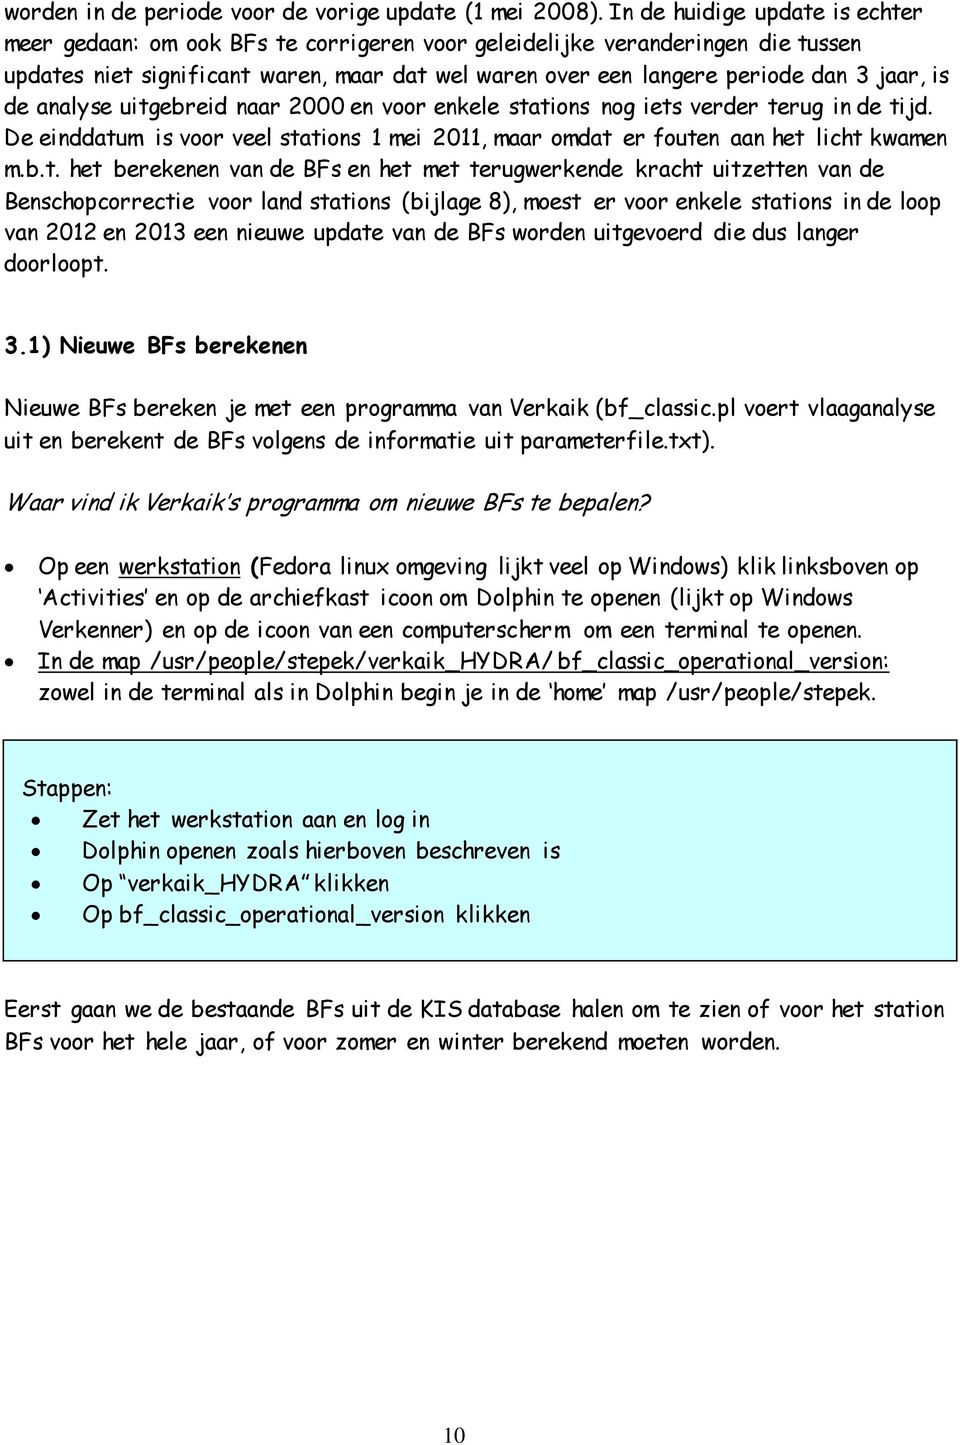 is de analyse uitg